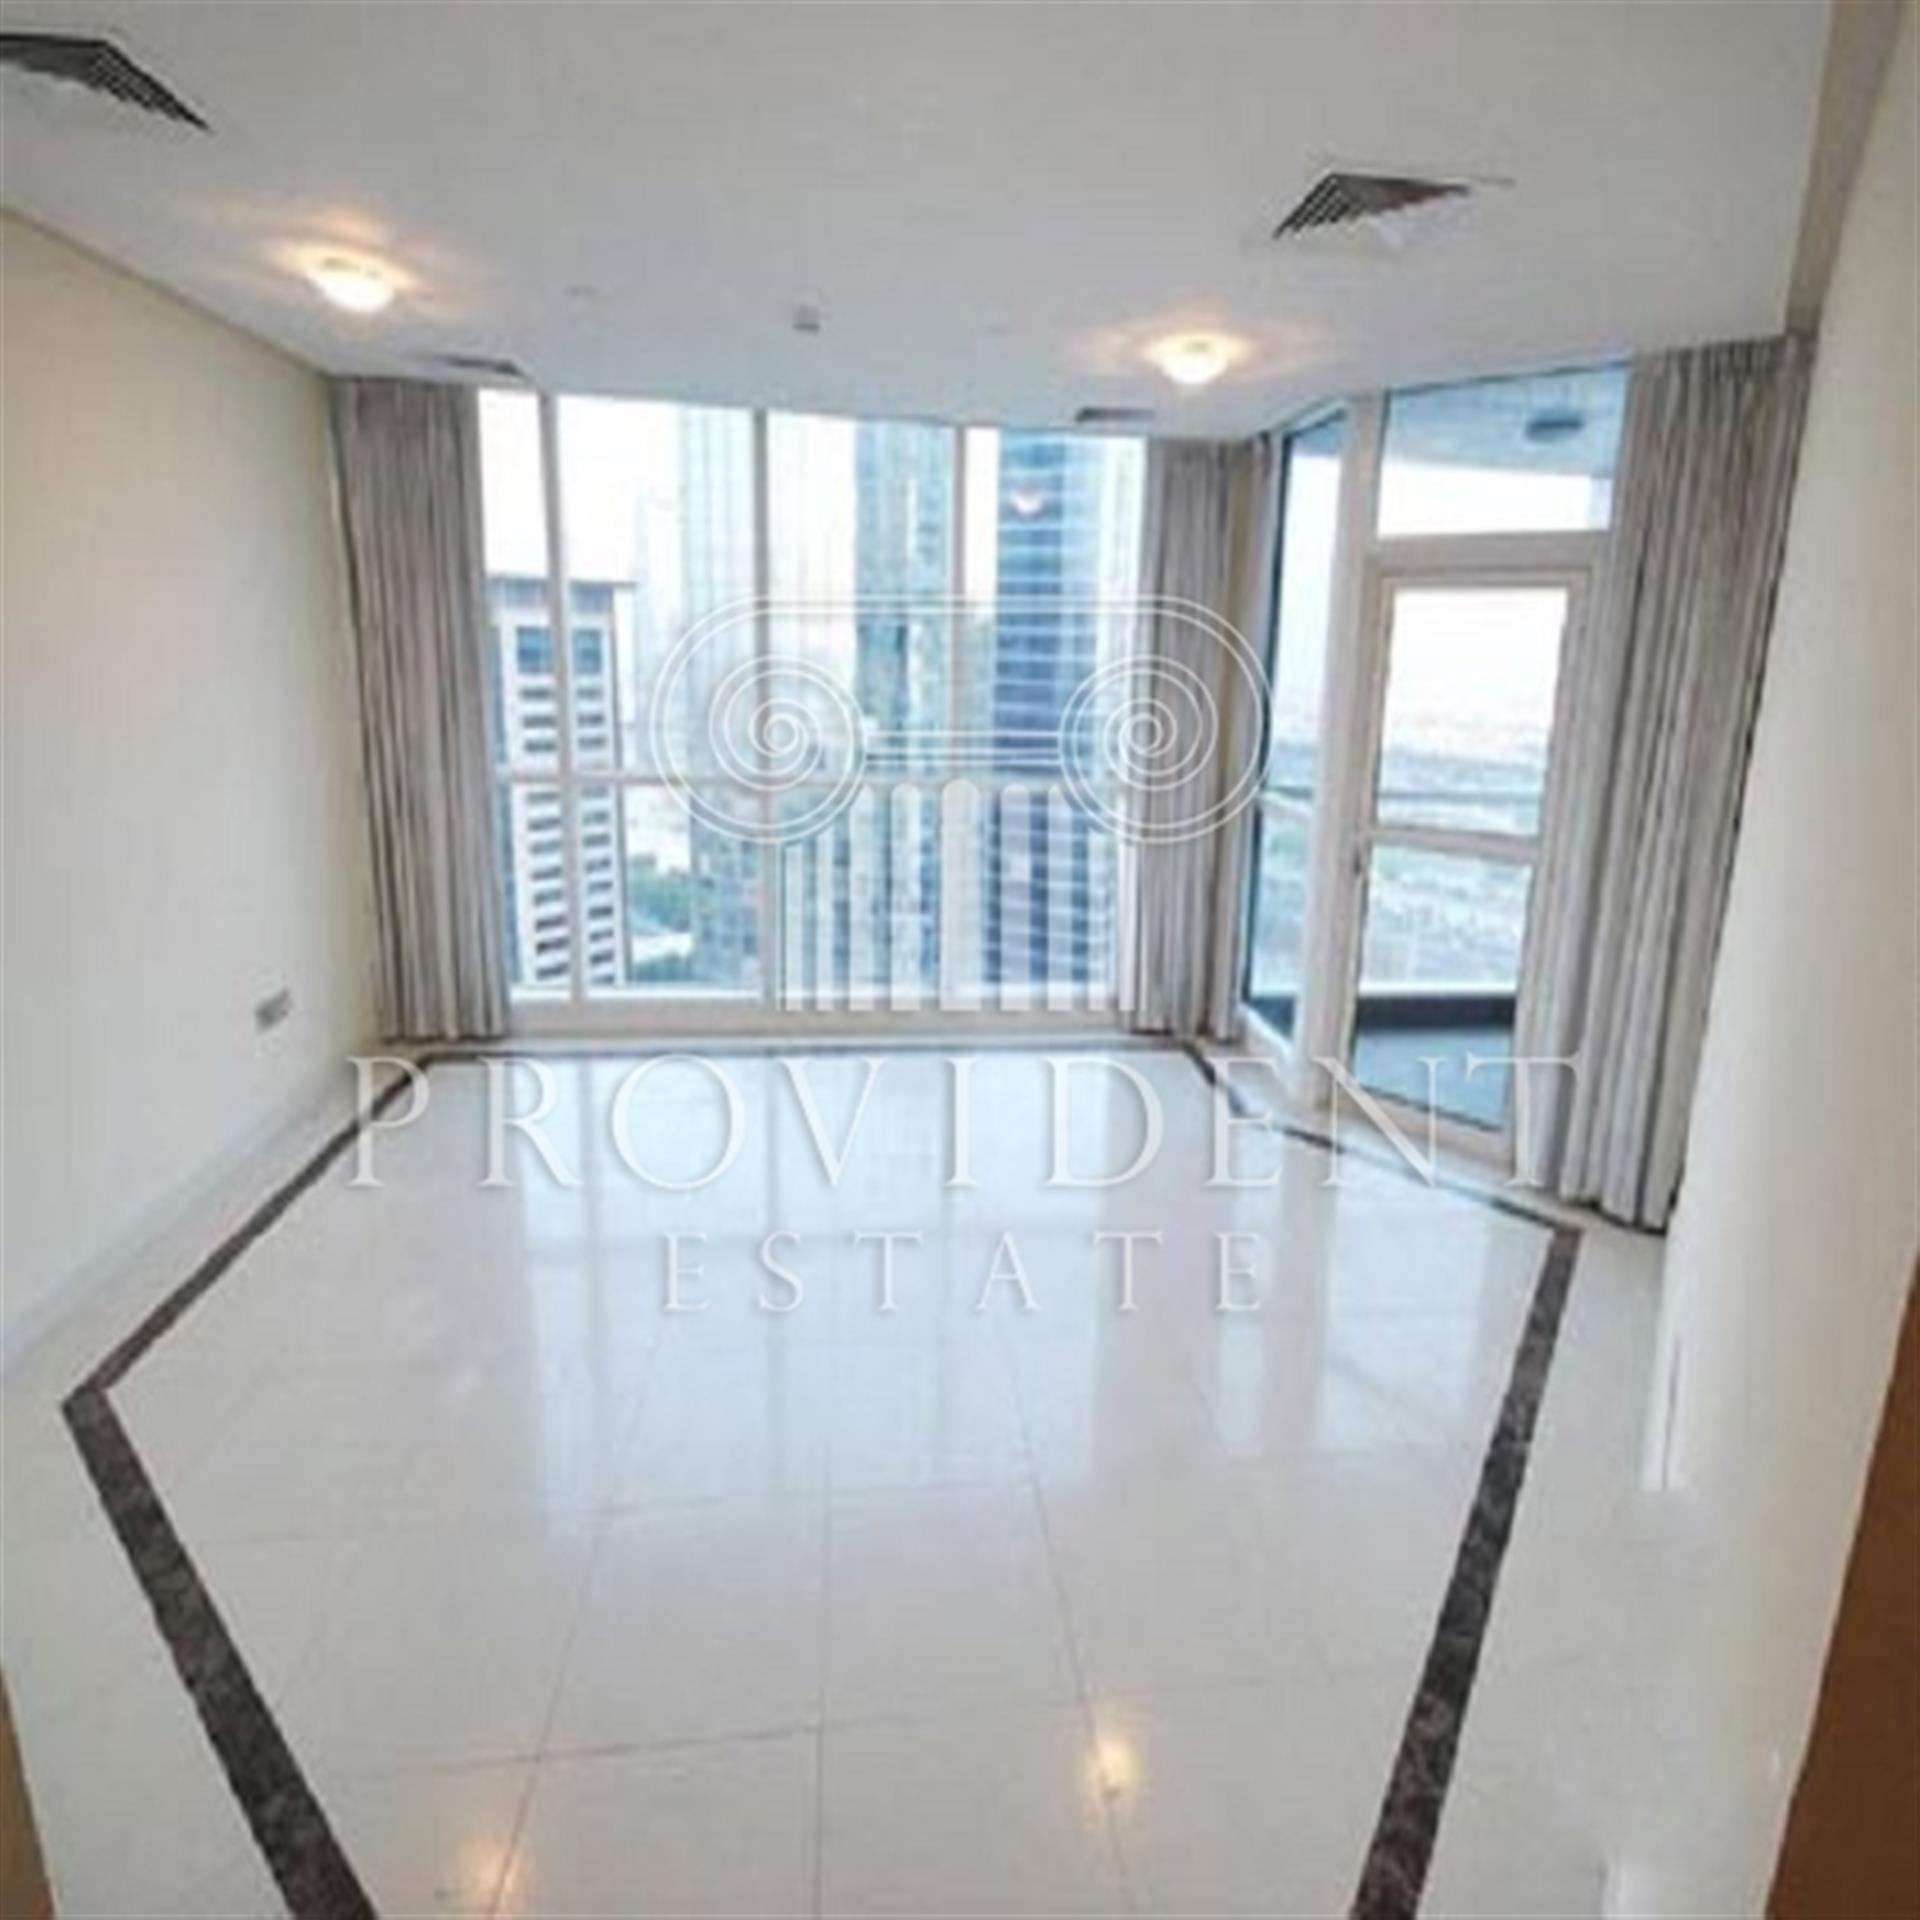 Property - Apartment for sale in Marina- Dubai - 23 Marina